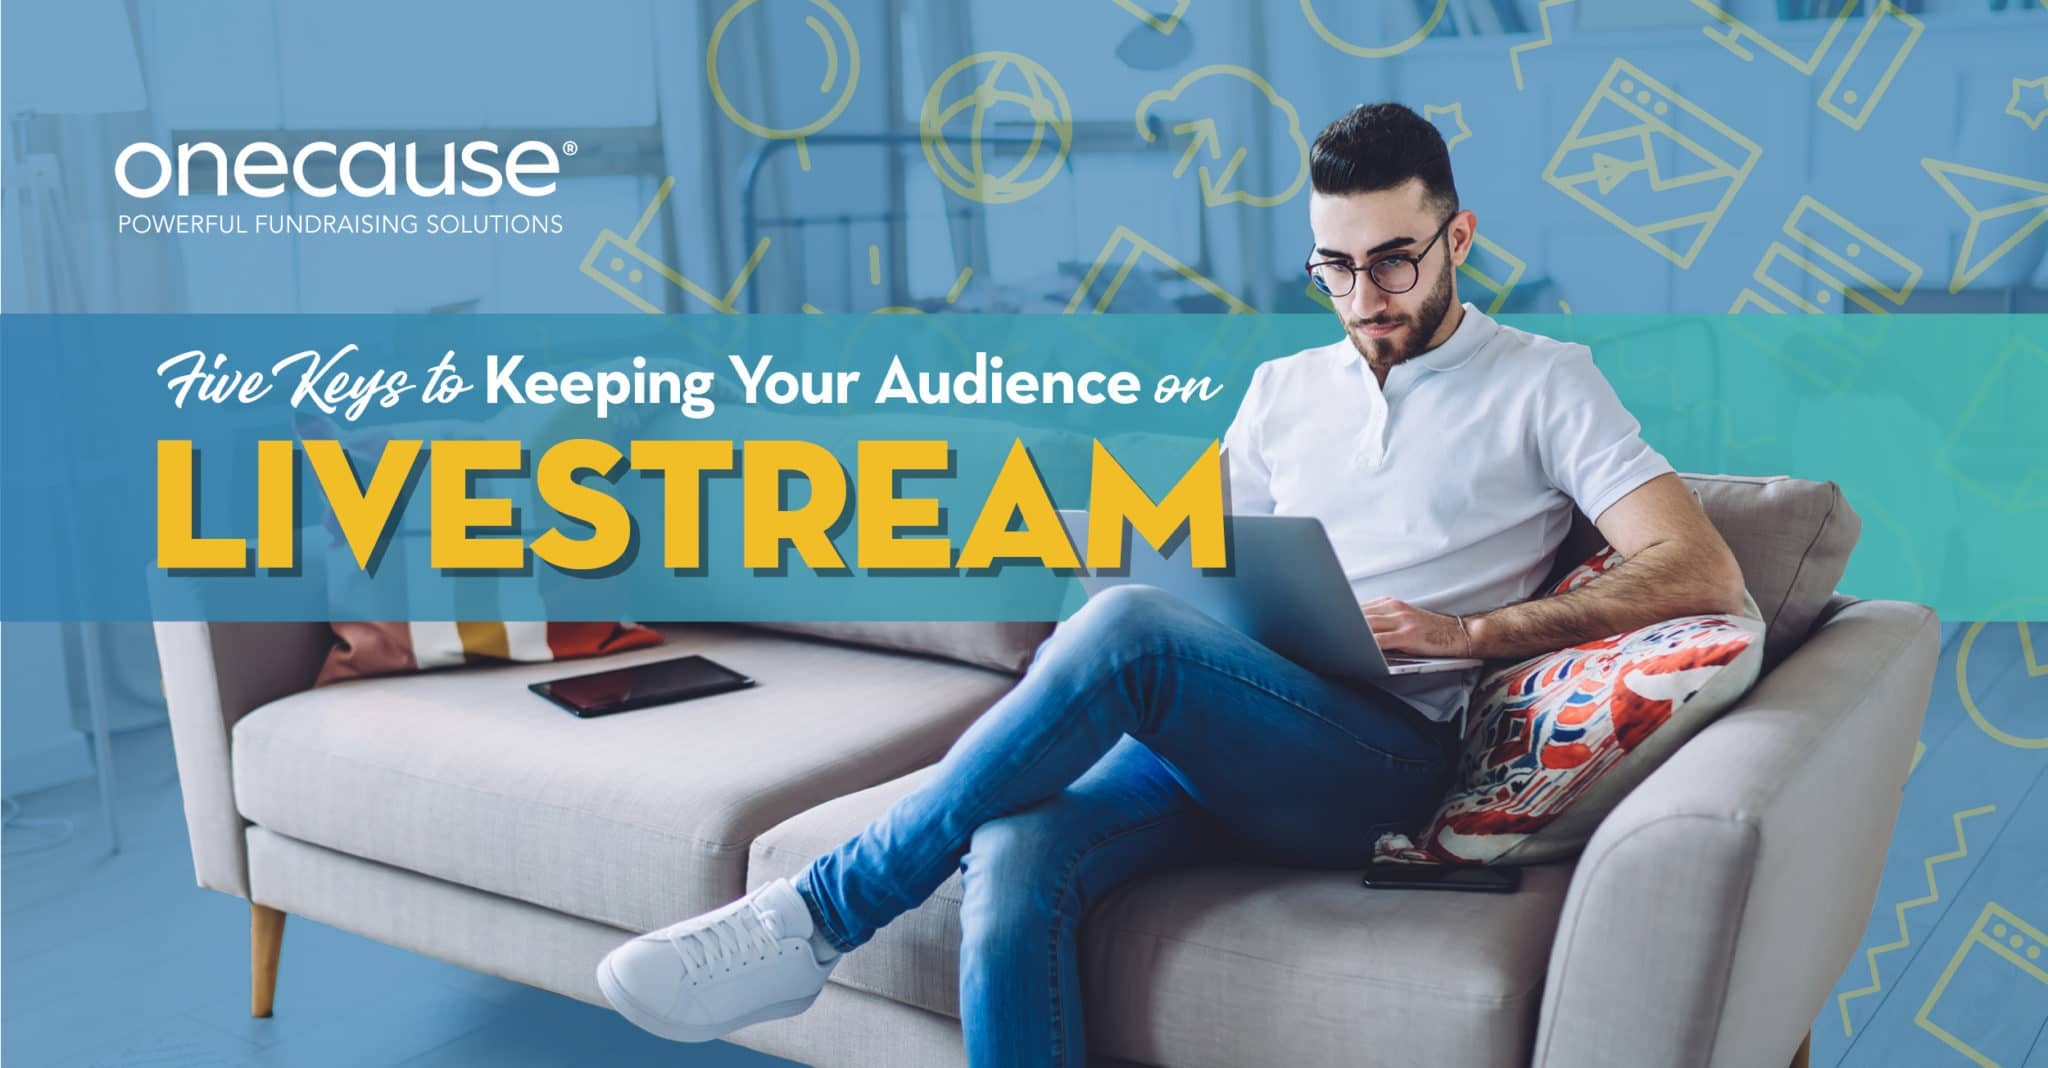 5 Keys to Keeping Your Audience on Livestream